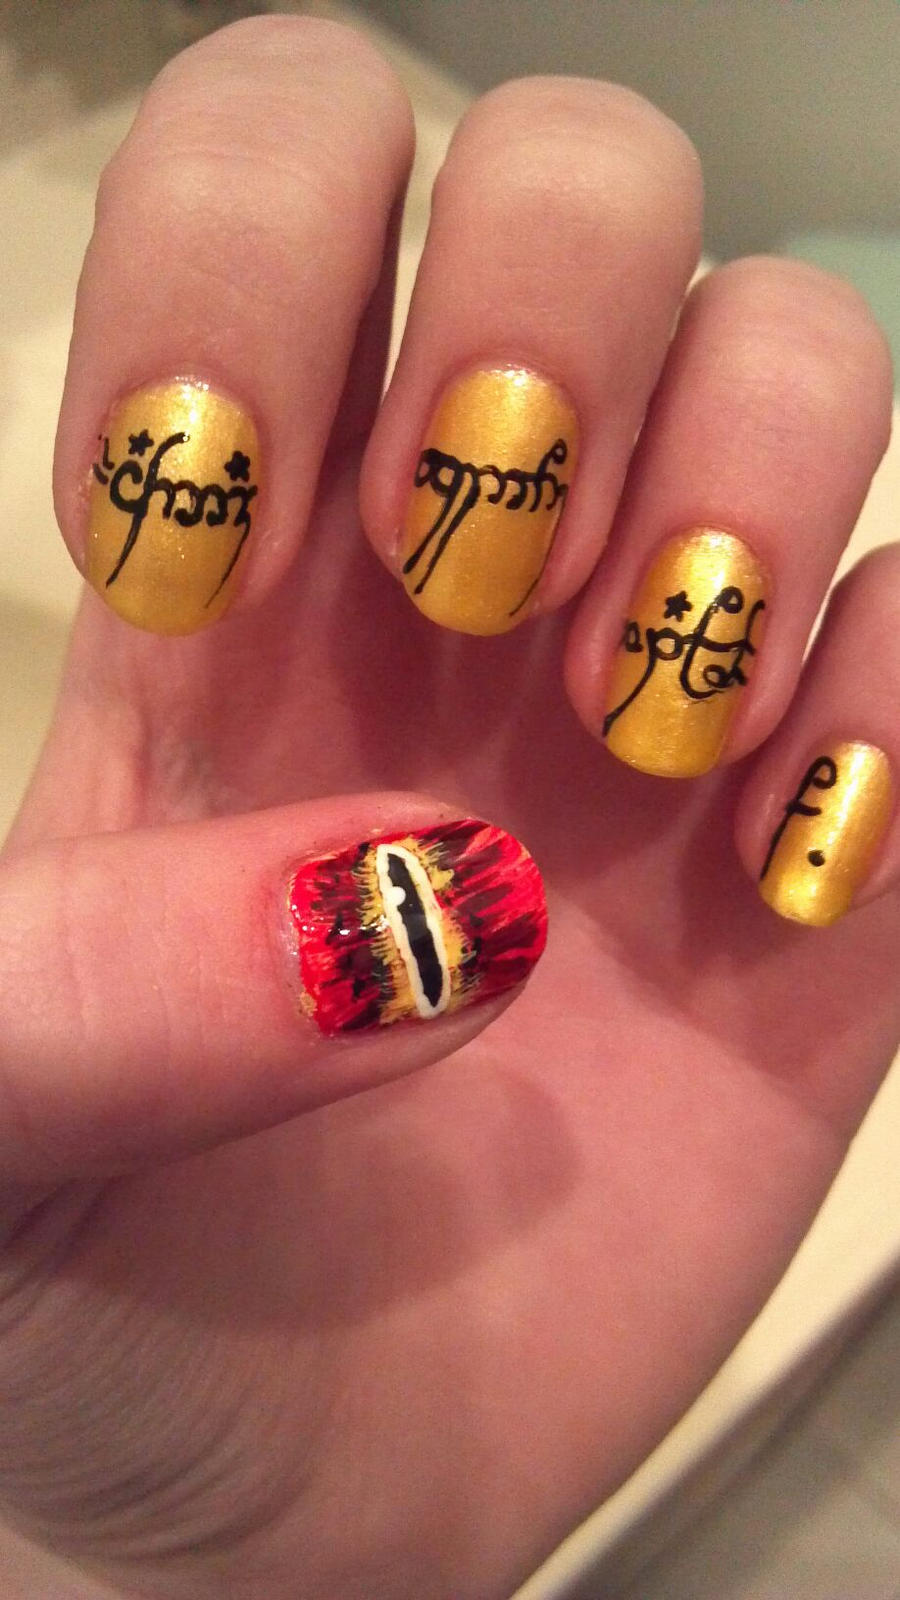 Lord of the Rings Nail Art by dyingxalicex on DeviantArt